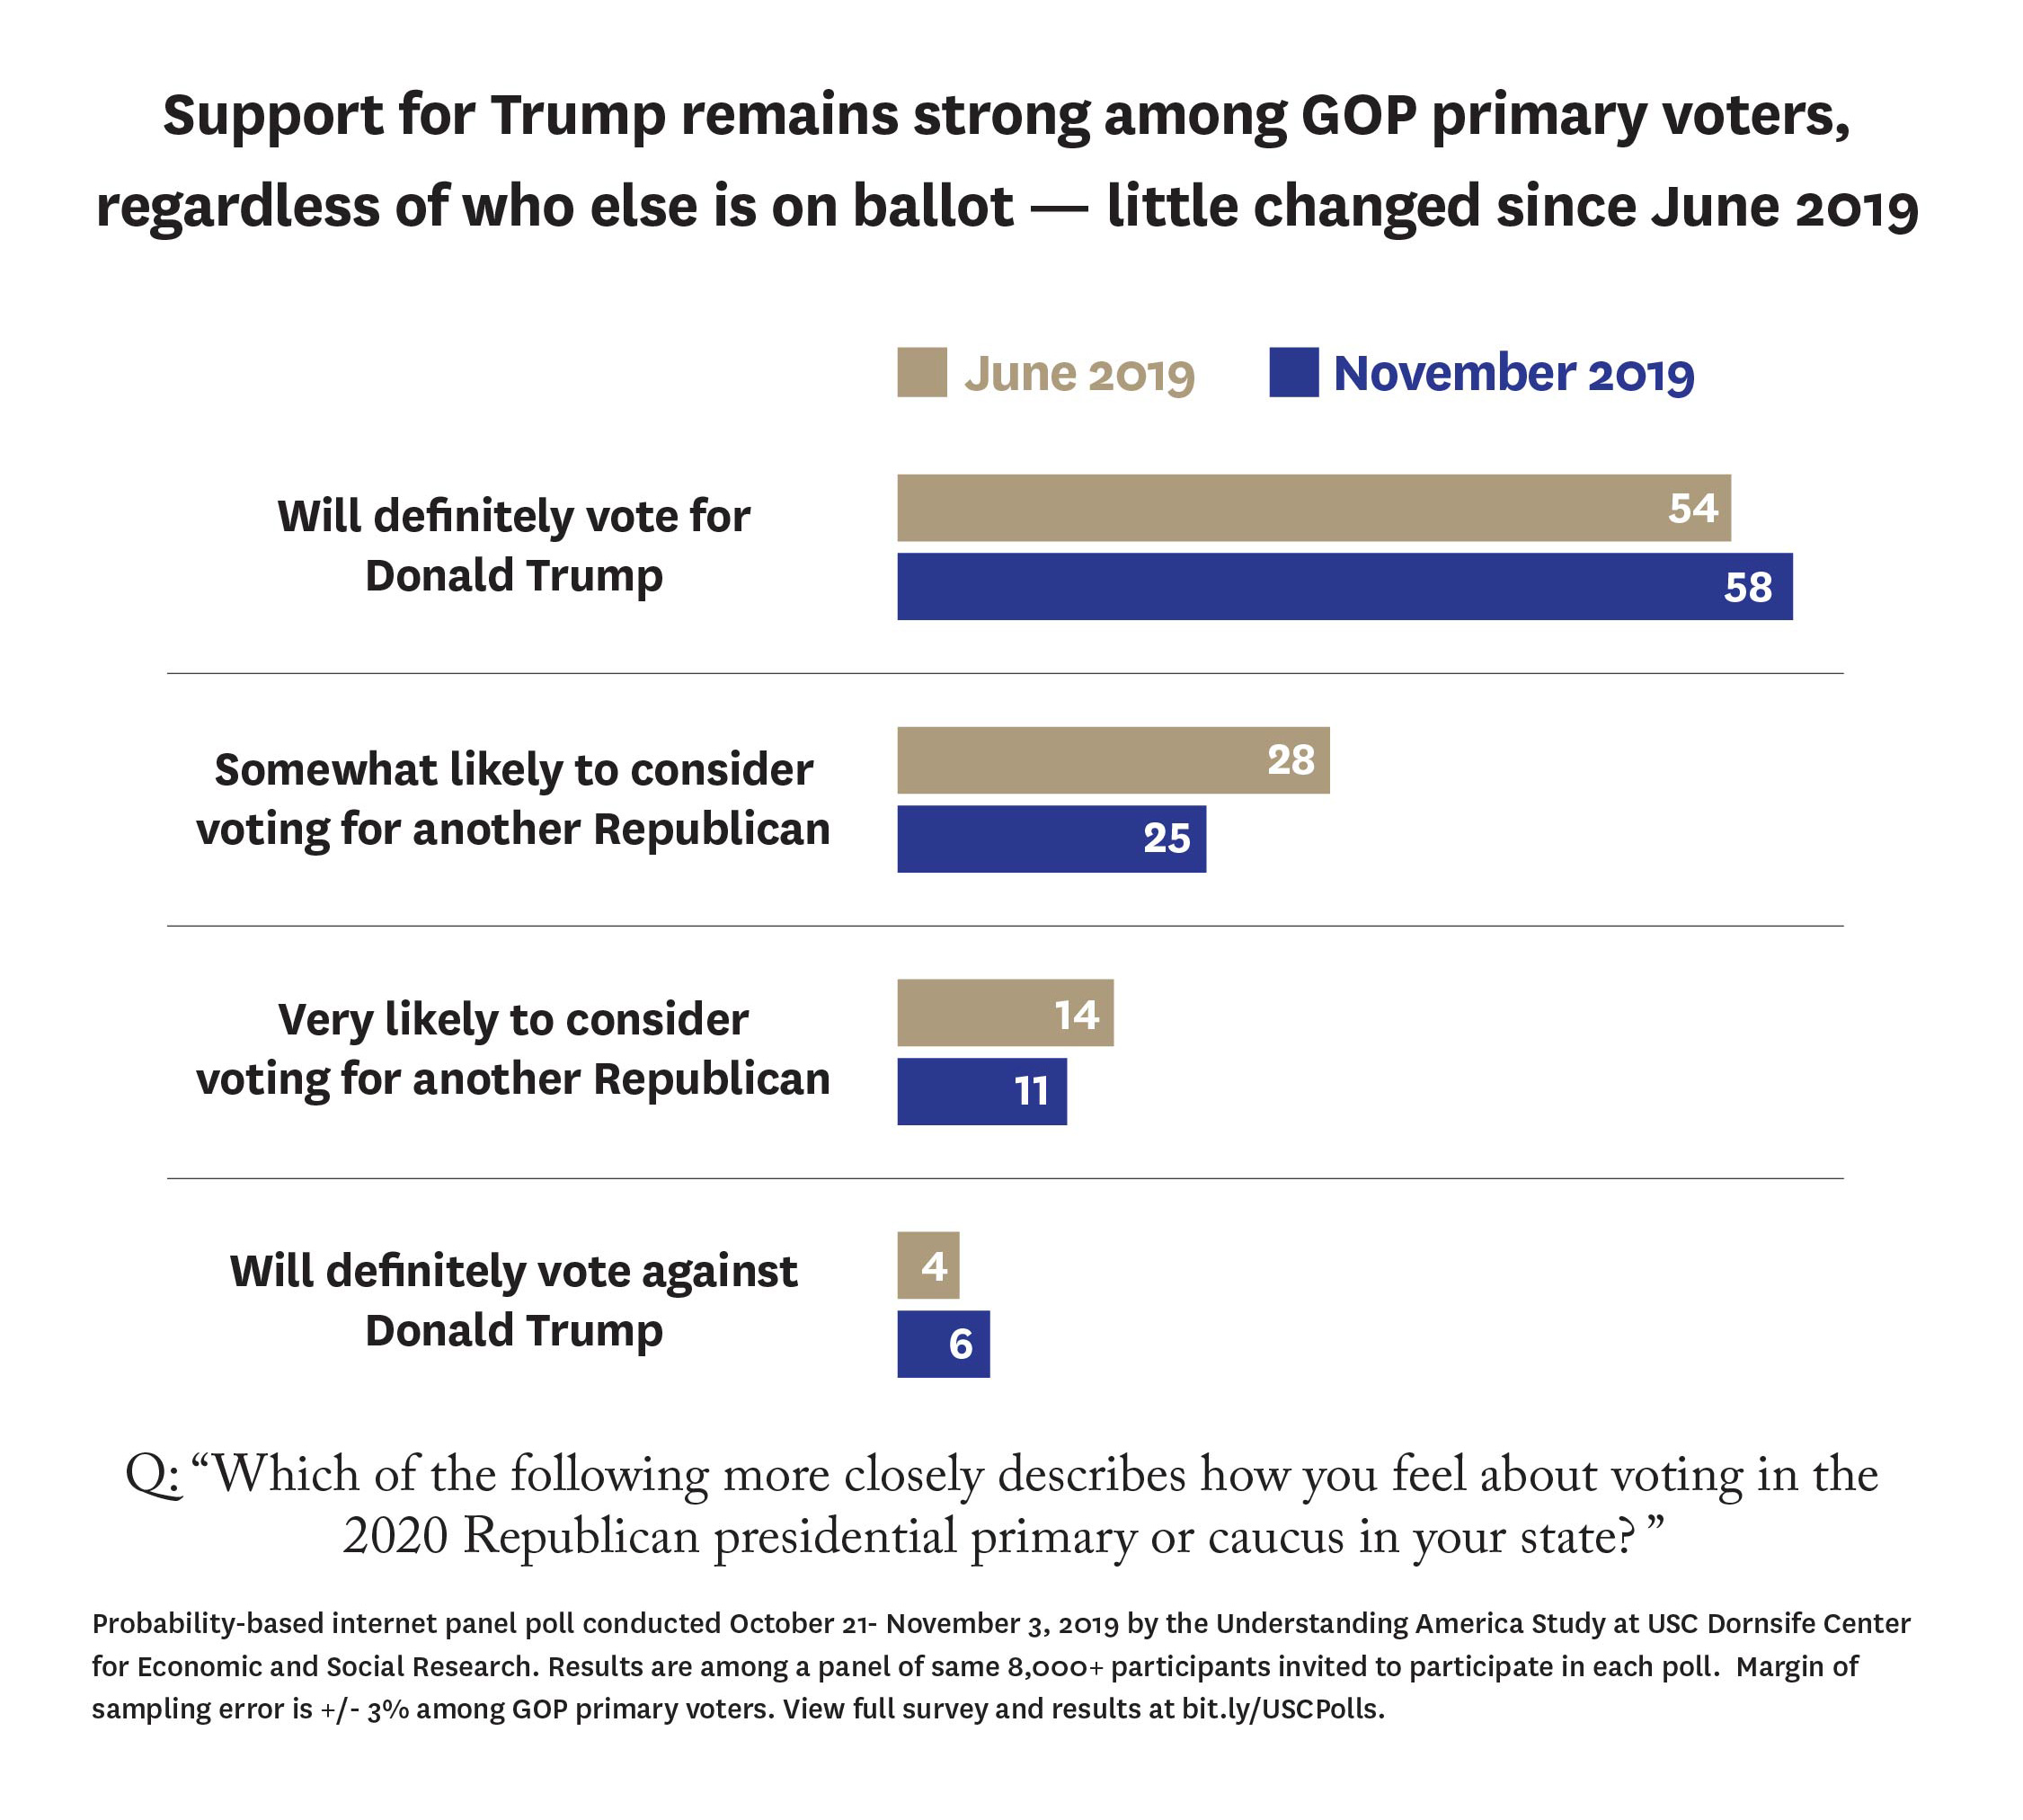 Trump support poll